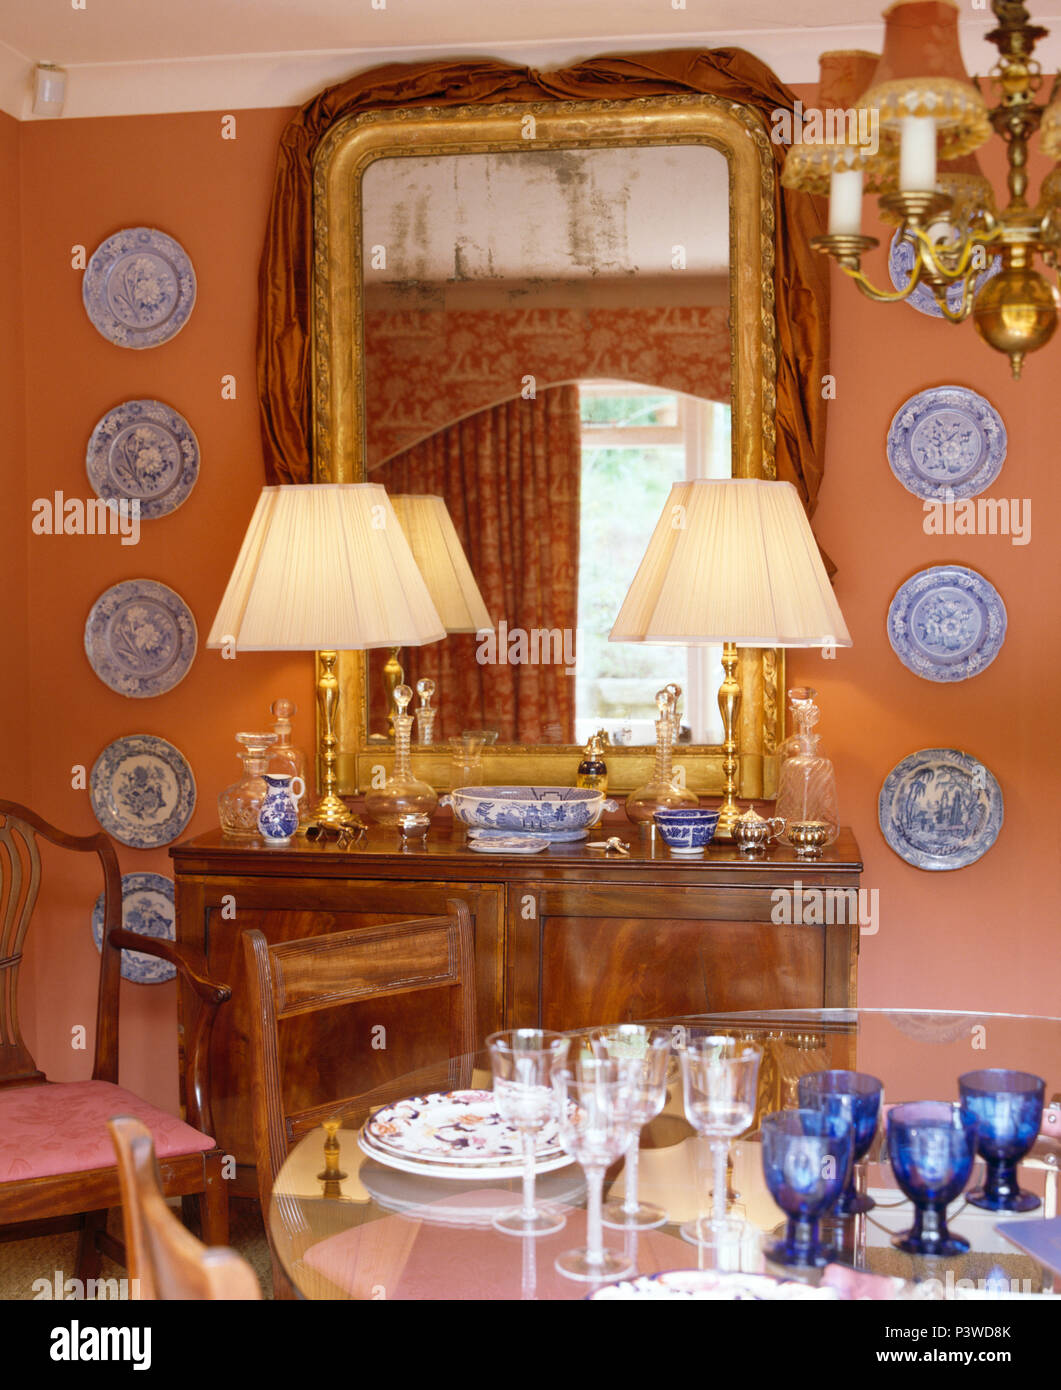 Collection of blue+white plates on either side of antique mirror on cupboard with lighted lamps in peach dining room - Stock Image